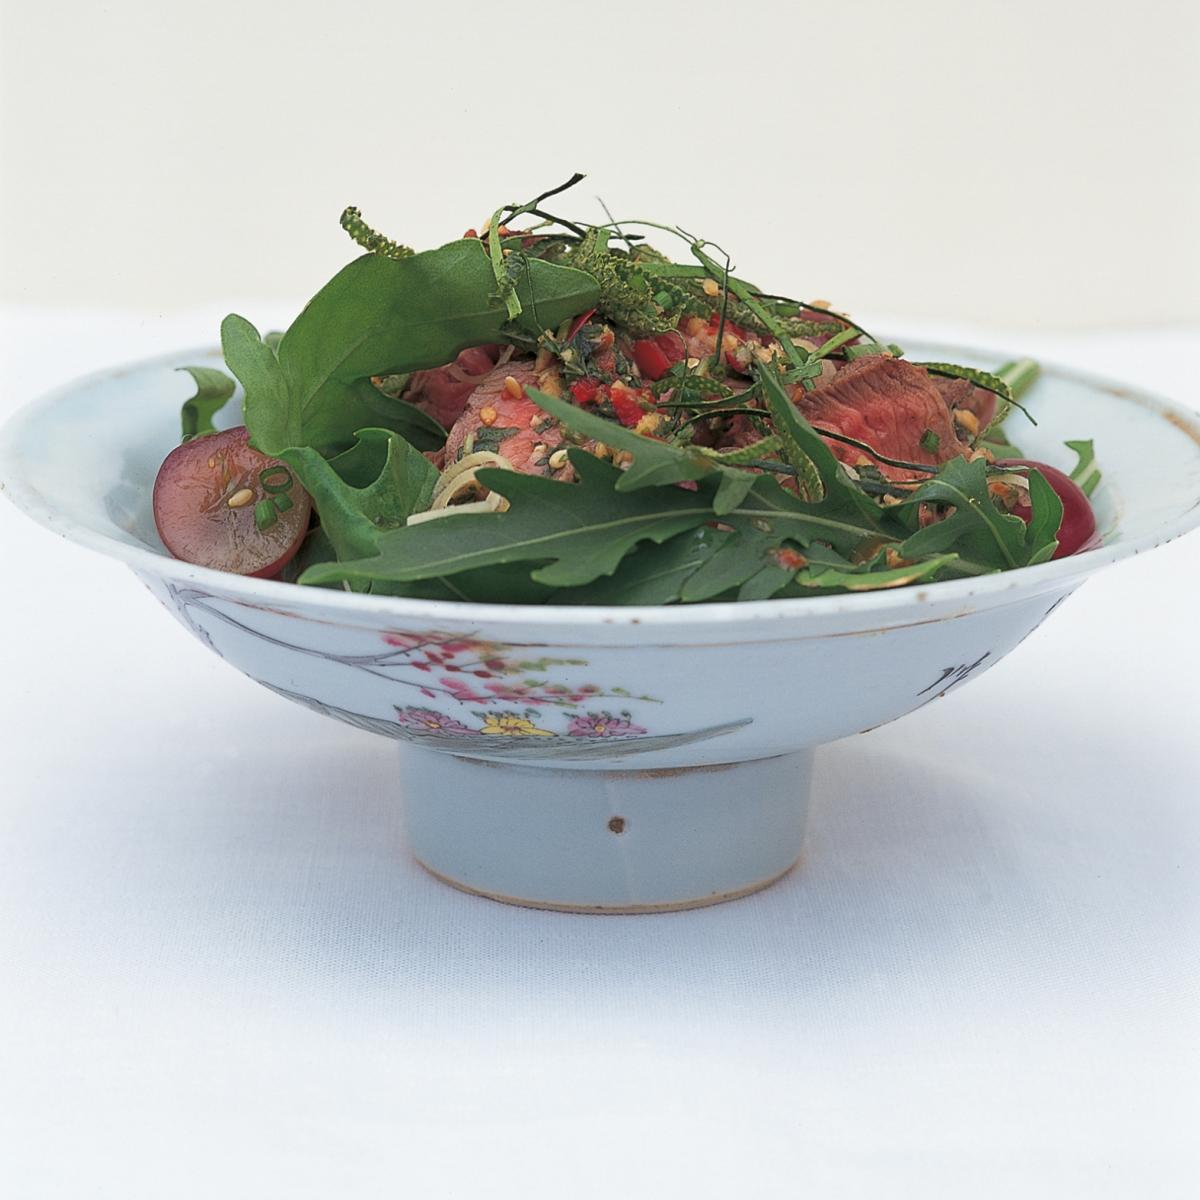 A picture of Delia's Thai Grilled-beef Salad with Grapes recipe